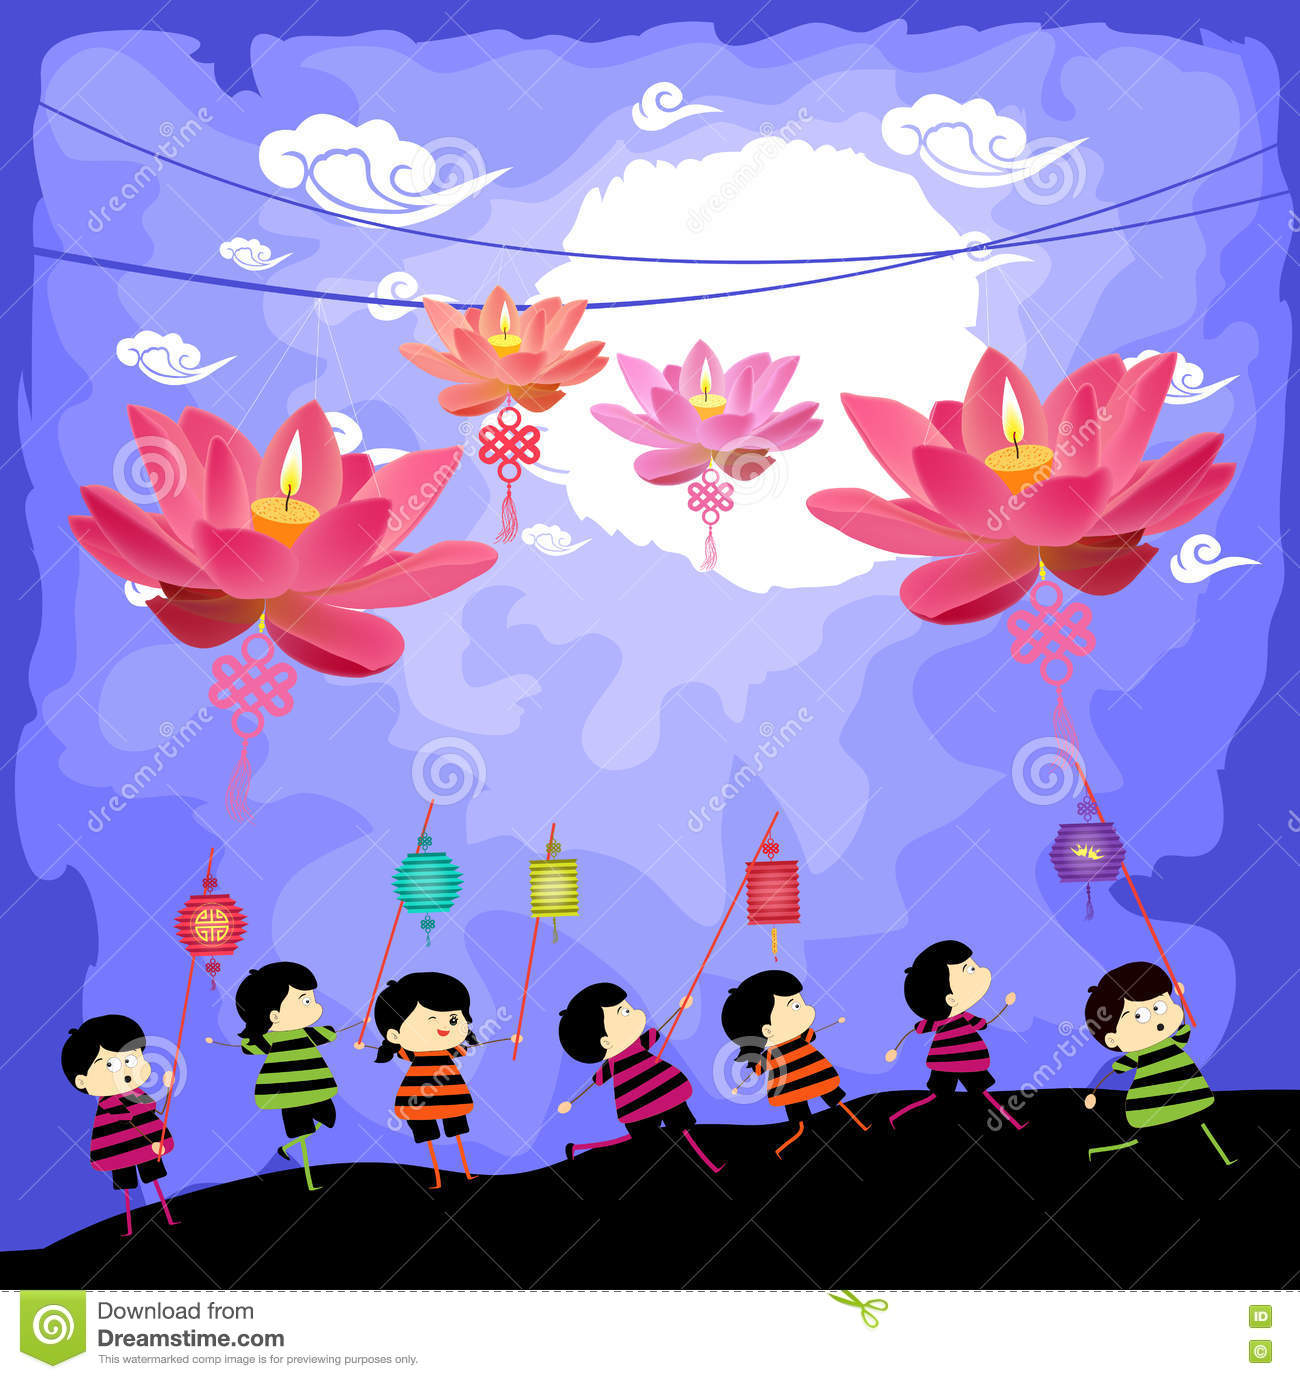 Mid autumn festival background with kids playing lanterns stock mid autumn festival background with kids playing lanterns royalty free stock image toneelgroepblik Image collections